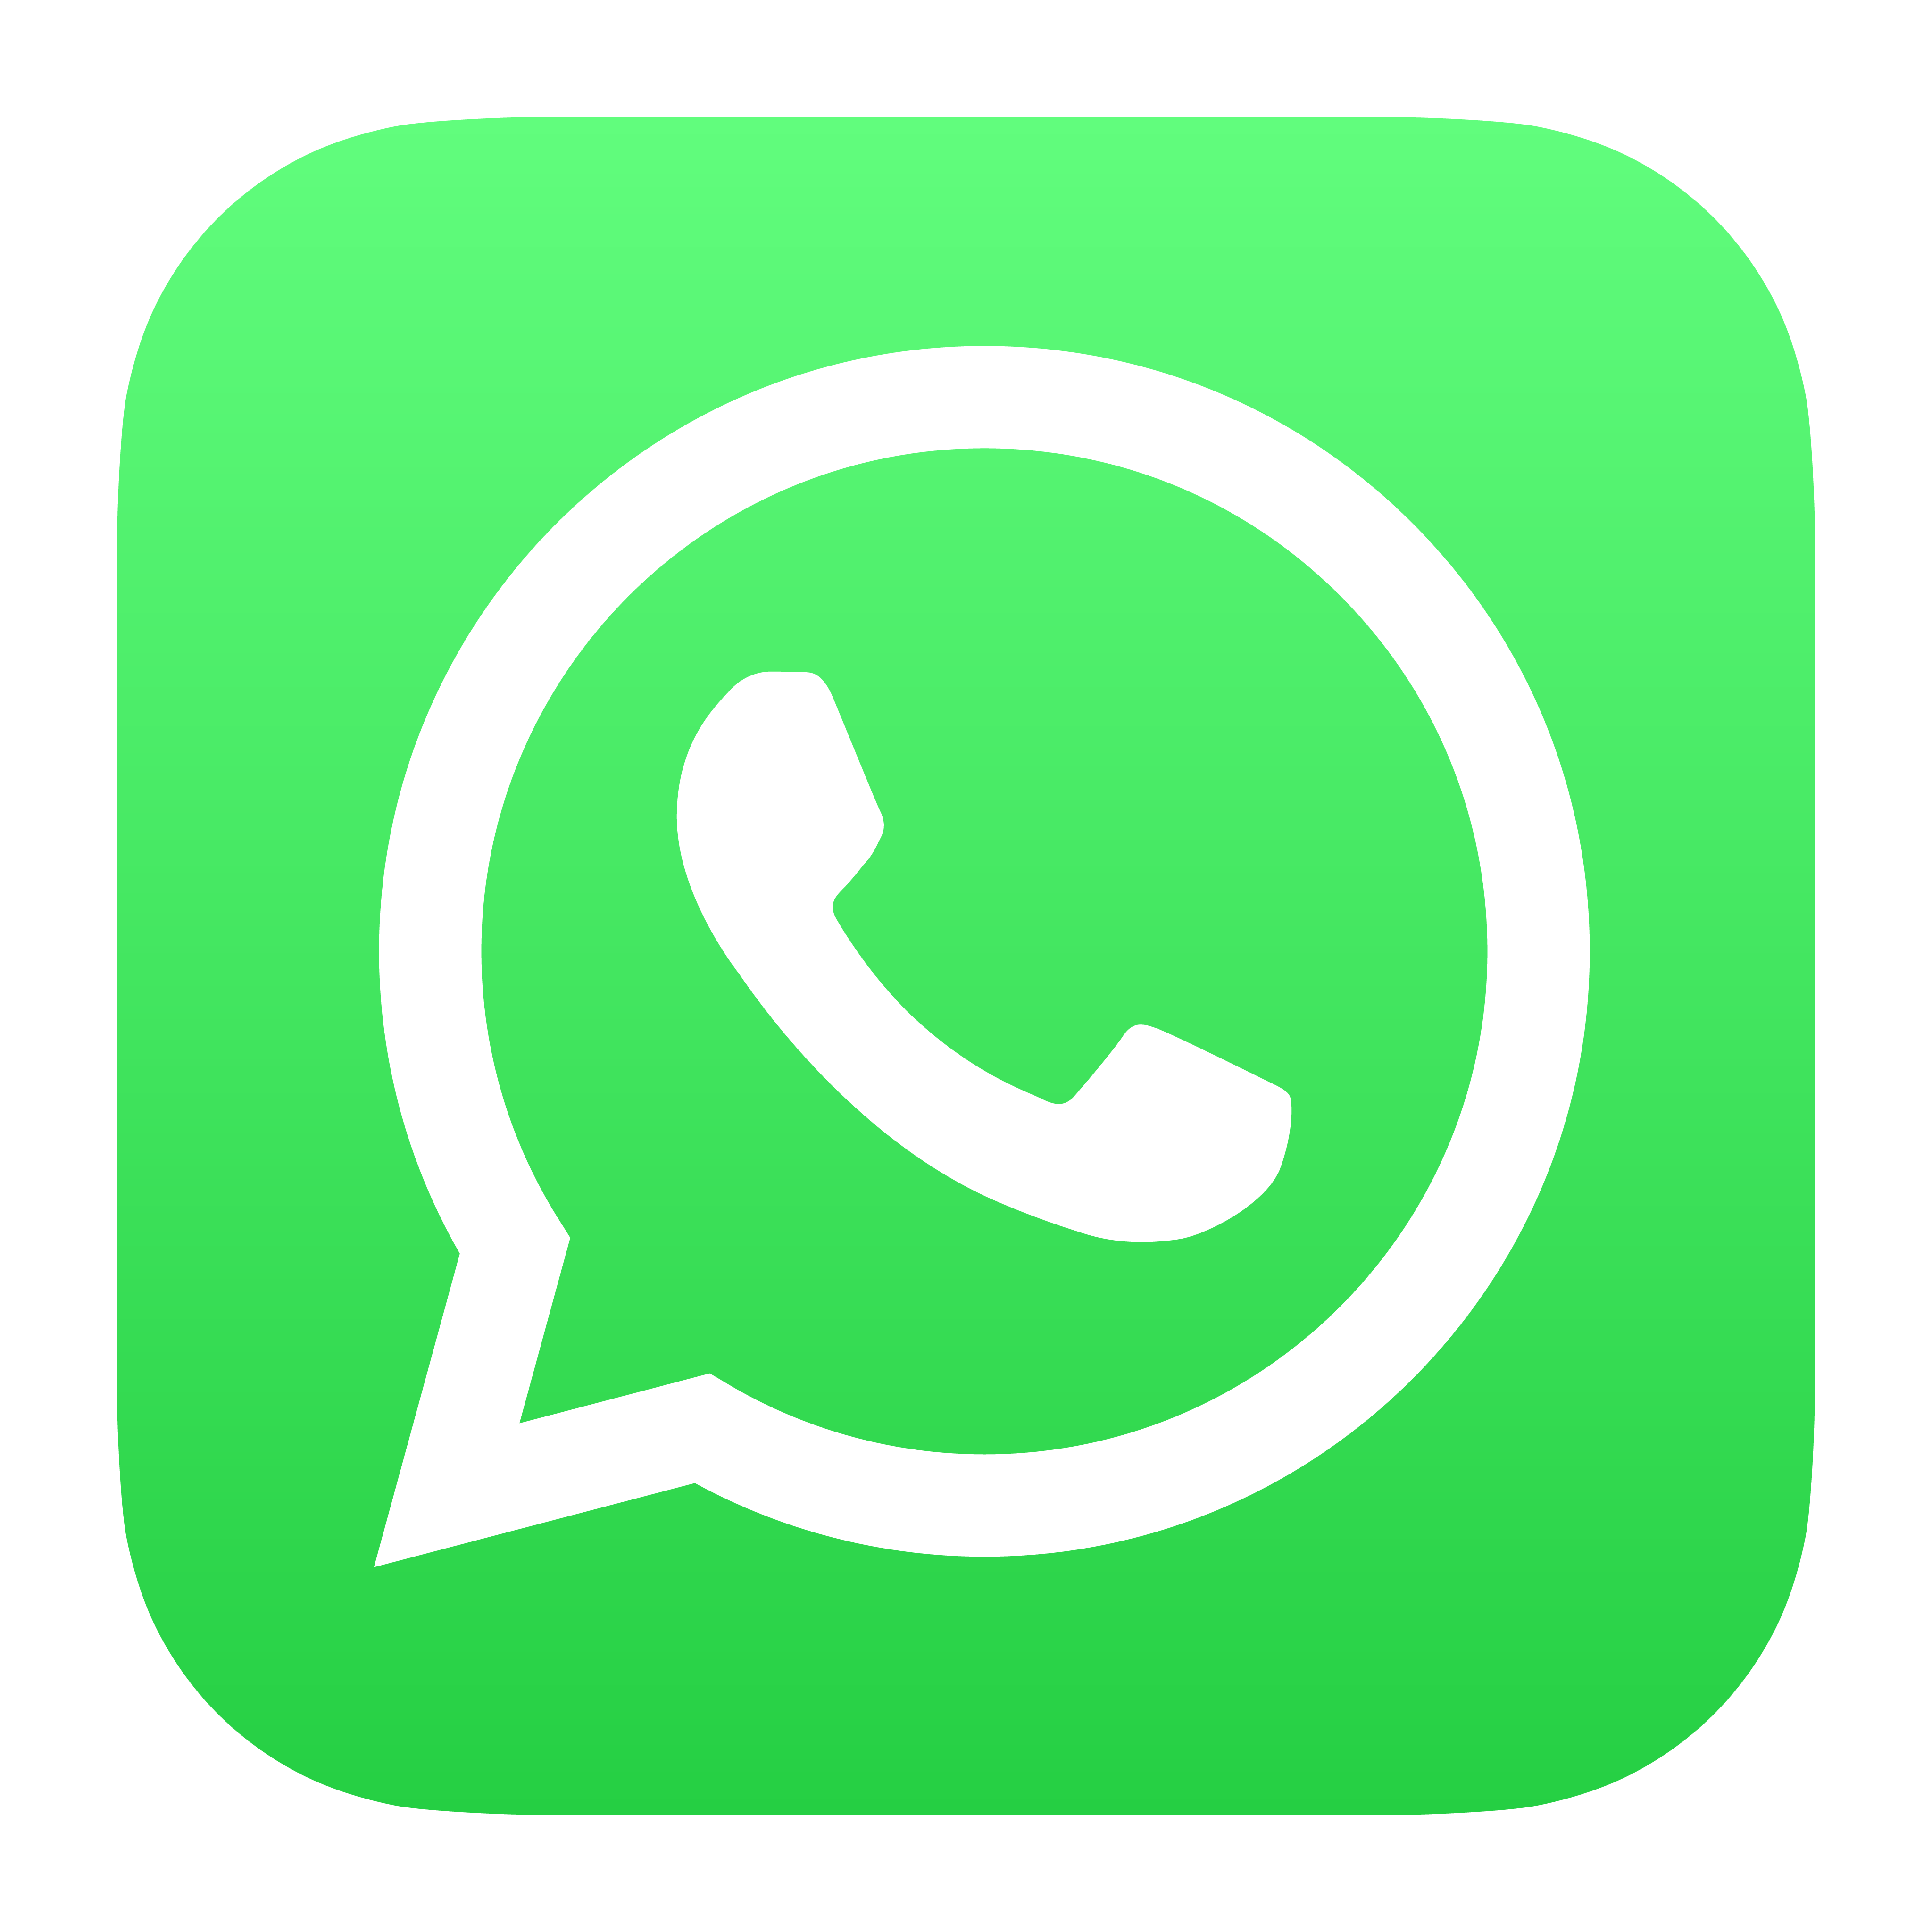 logo-whatsapp-verde-icone-ios-android-4096.png